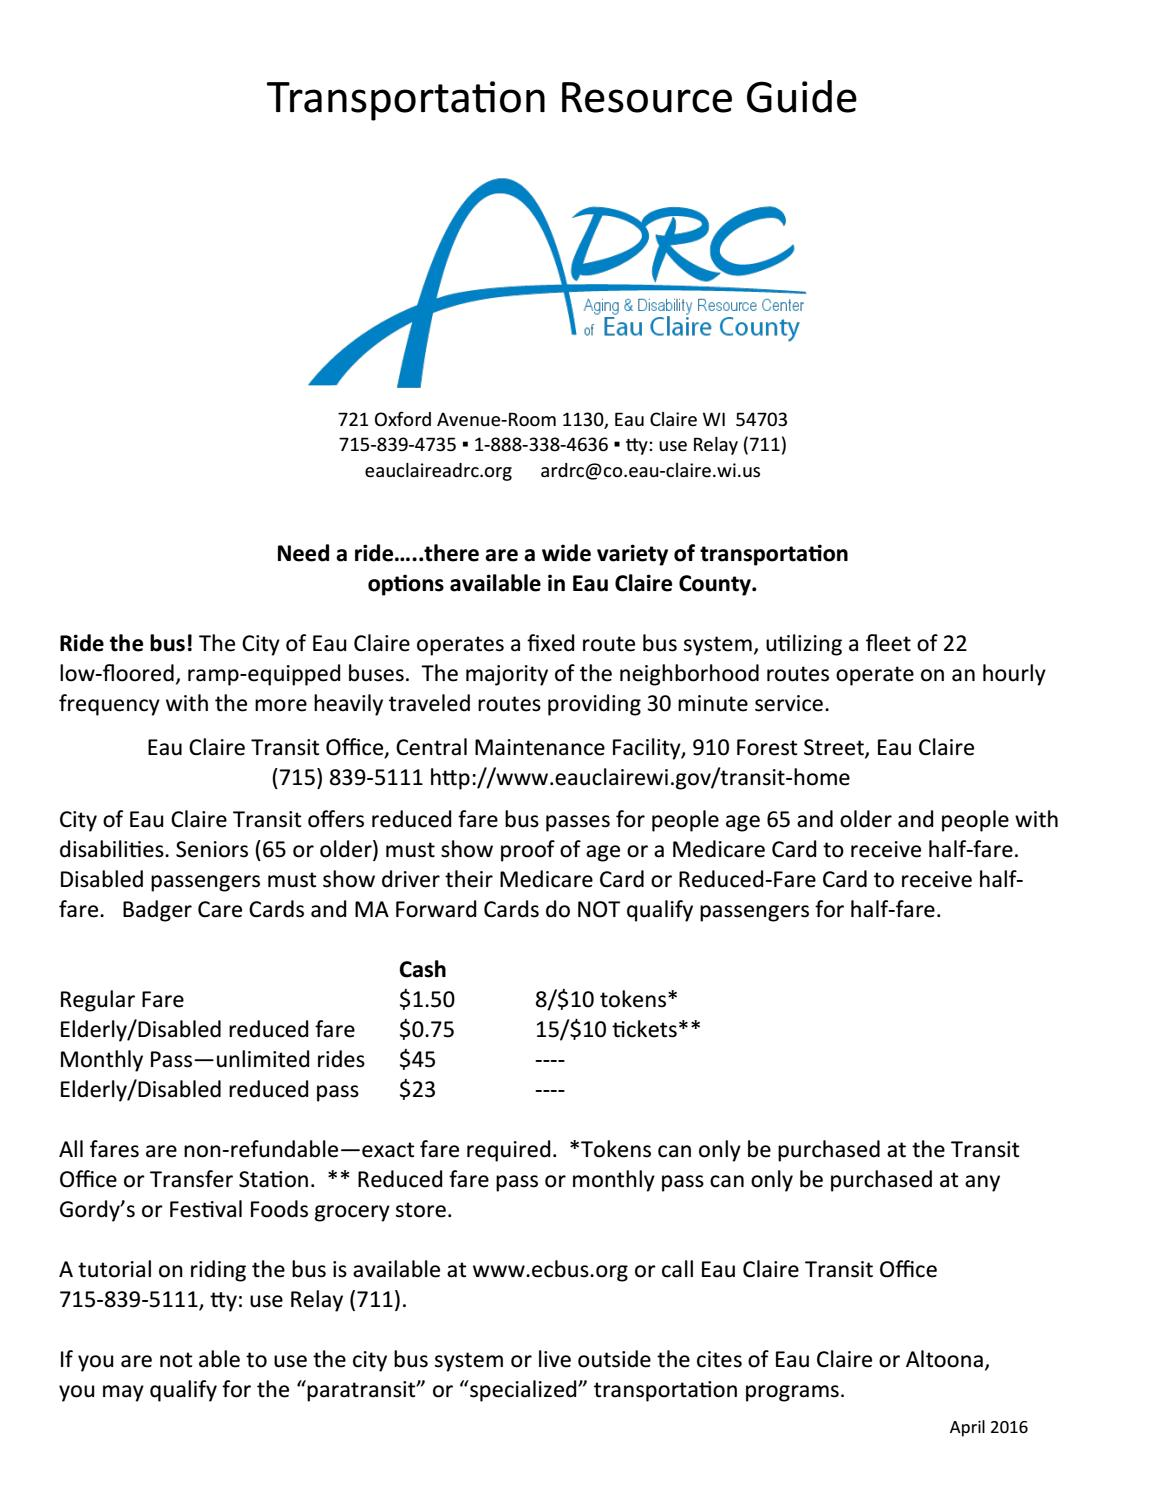 Transportation Resource Guide By Adrc Eau Claire County